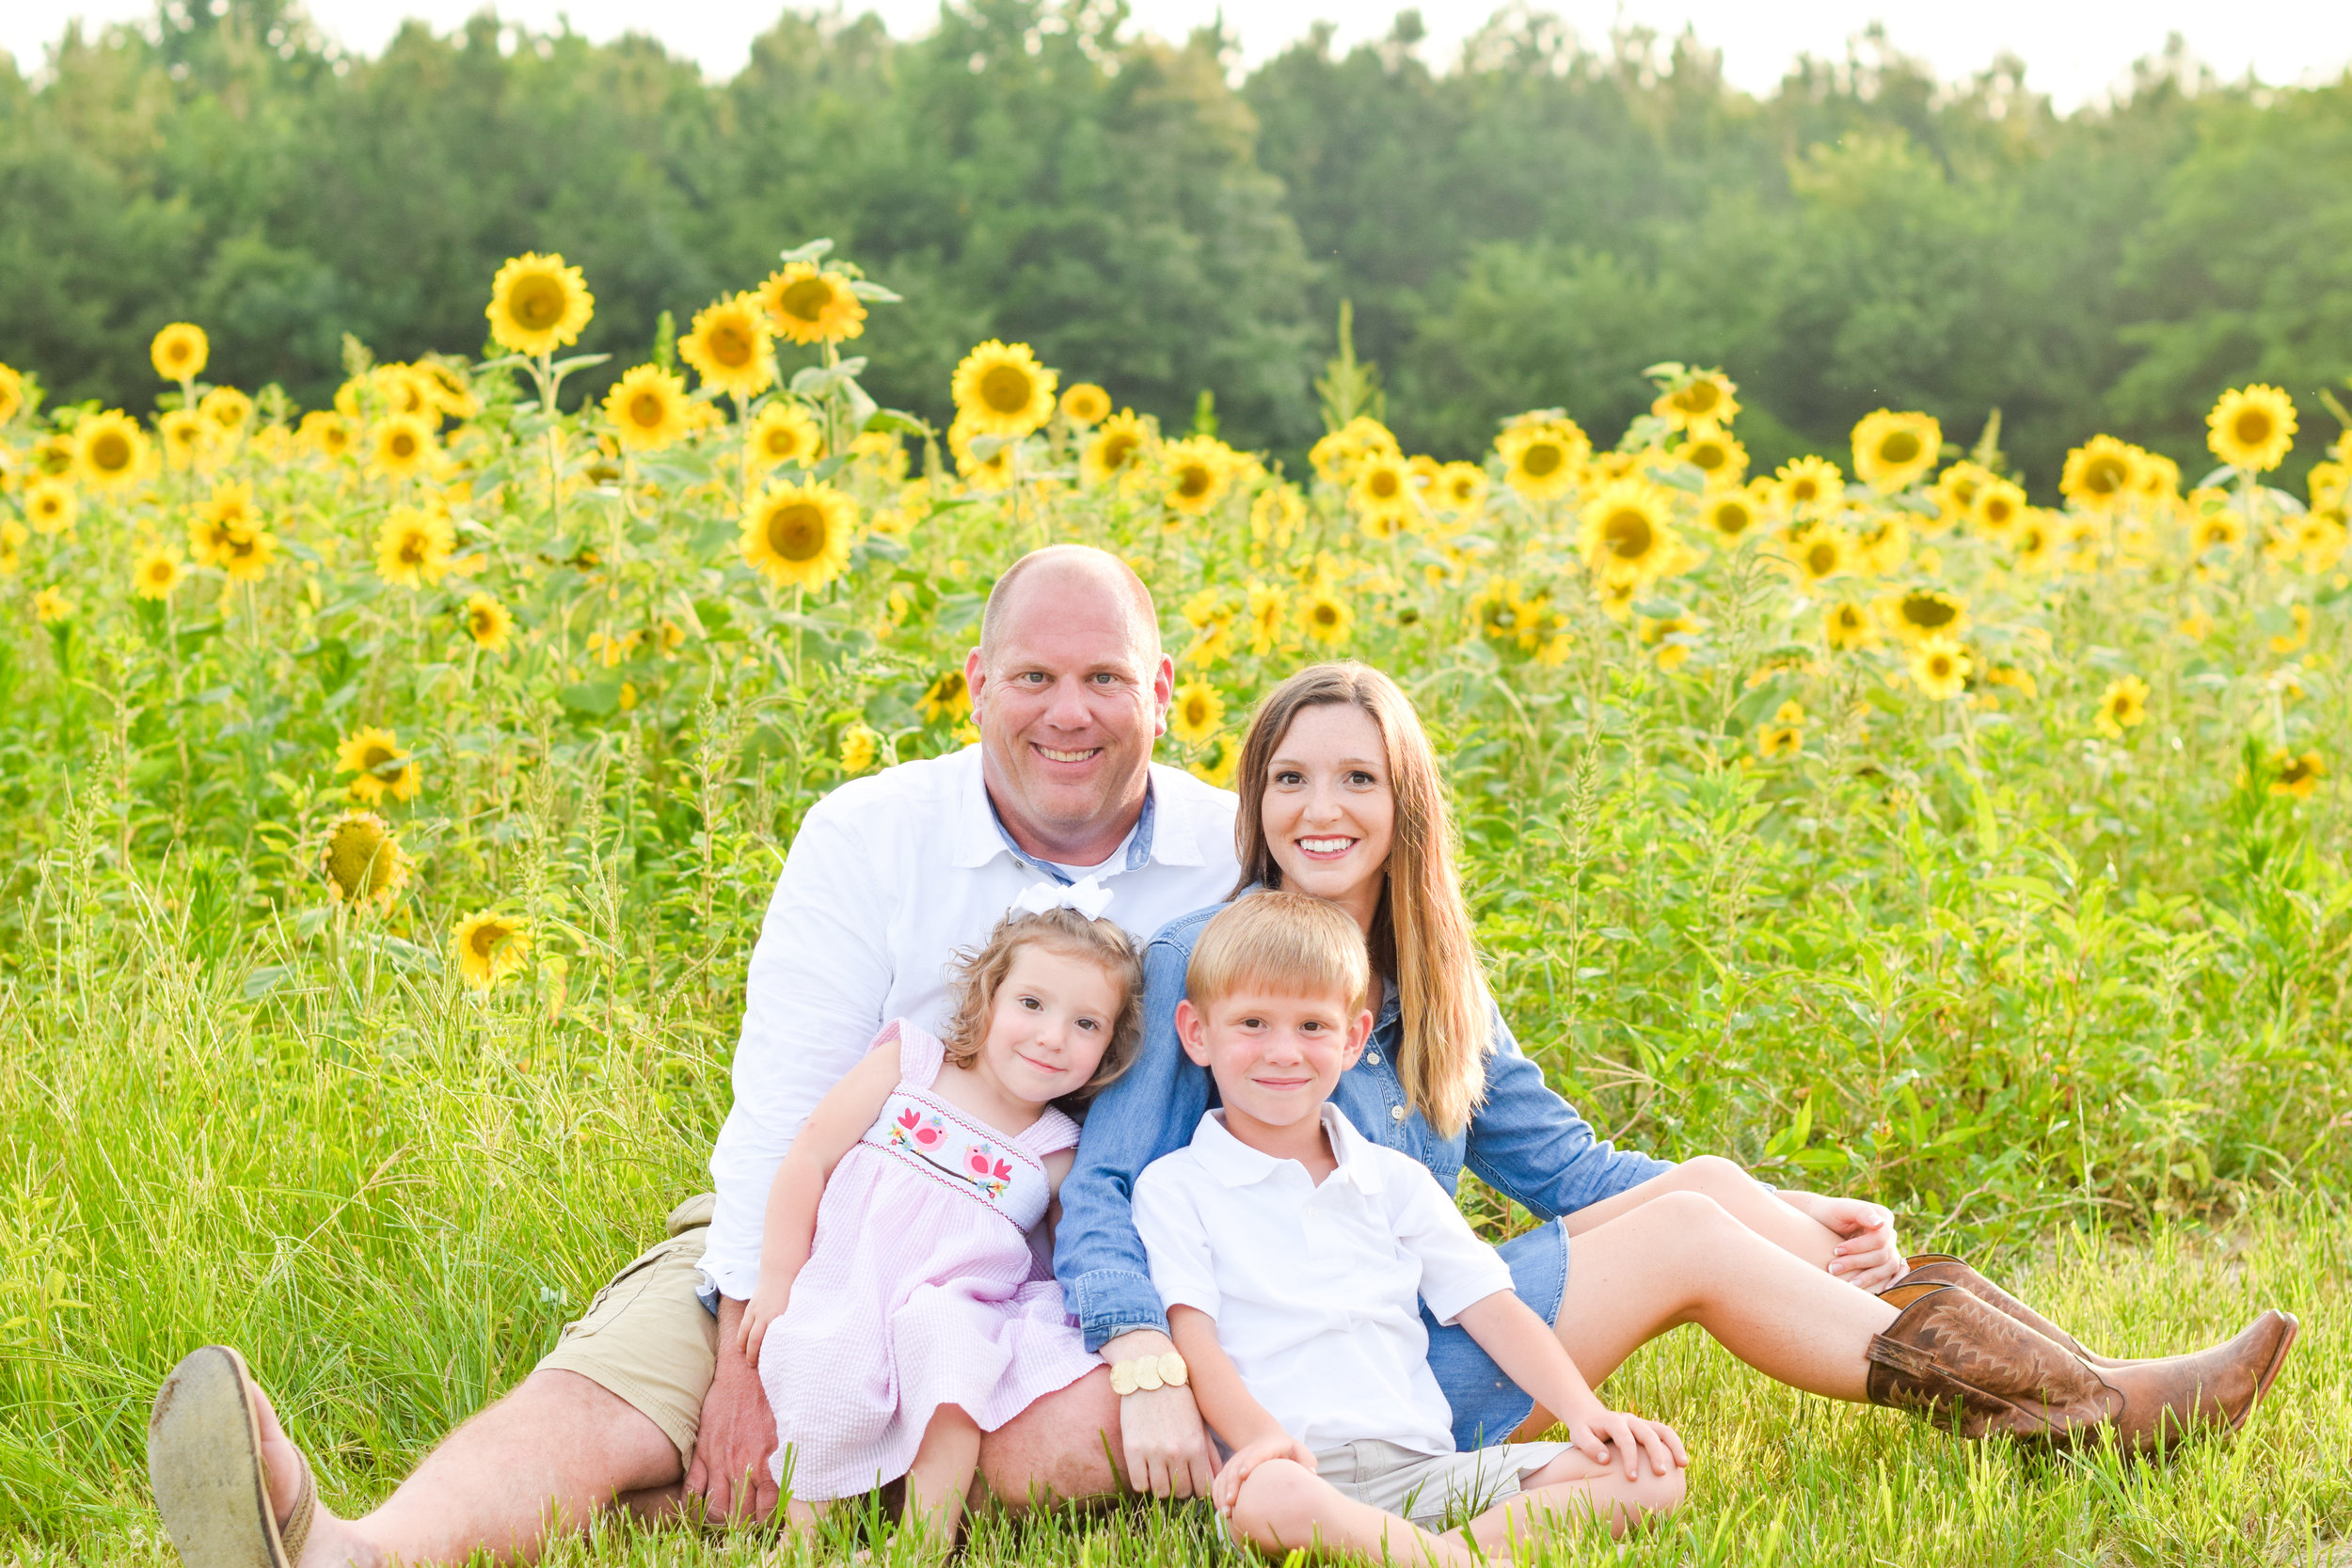 Abby is much more than a photographer, she's an artist! When my husband and I decided on doing family photos in our field of sunflowers she was totally on board. She even scheduled our session around making sure they were in their peek of blooming. She gave me pointers on what she thought would look the best on my family with the chosen background and gave me honest opinions on things that may not photograph as well. I appreciated that so much! She was also wonderful with our children and when she left they talked about her for days. We loved the way the pictures turned out. She will definitely be my go to photographer from now on. THANKS ABBY! Brittany